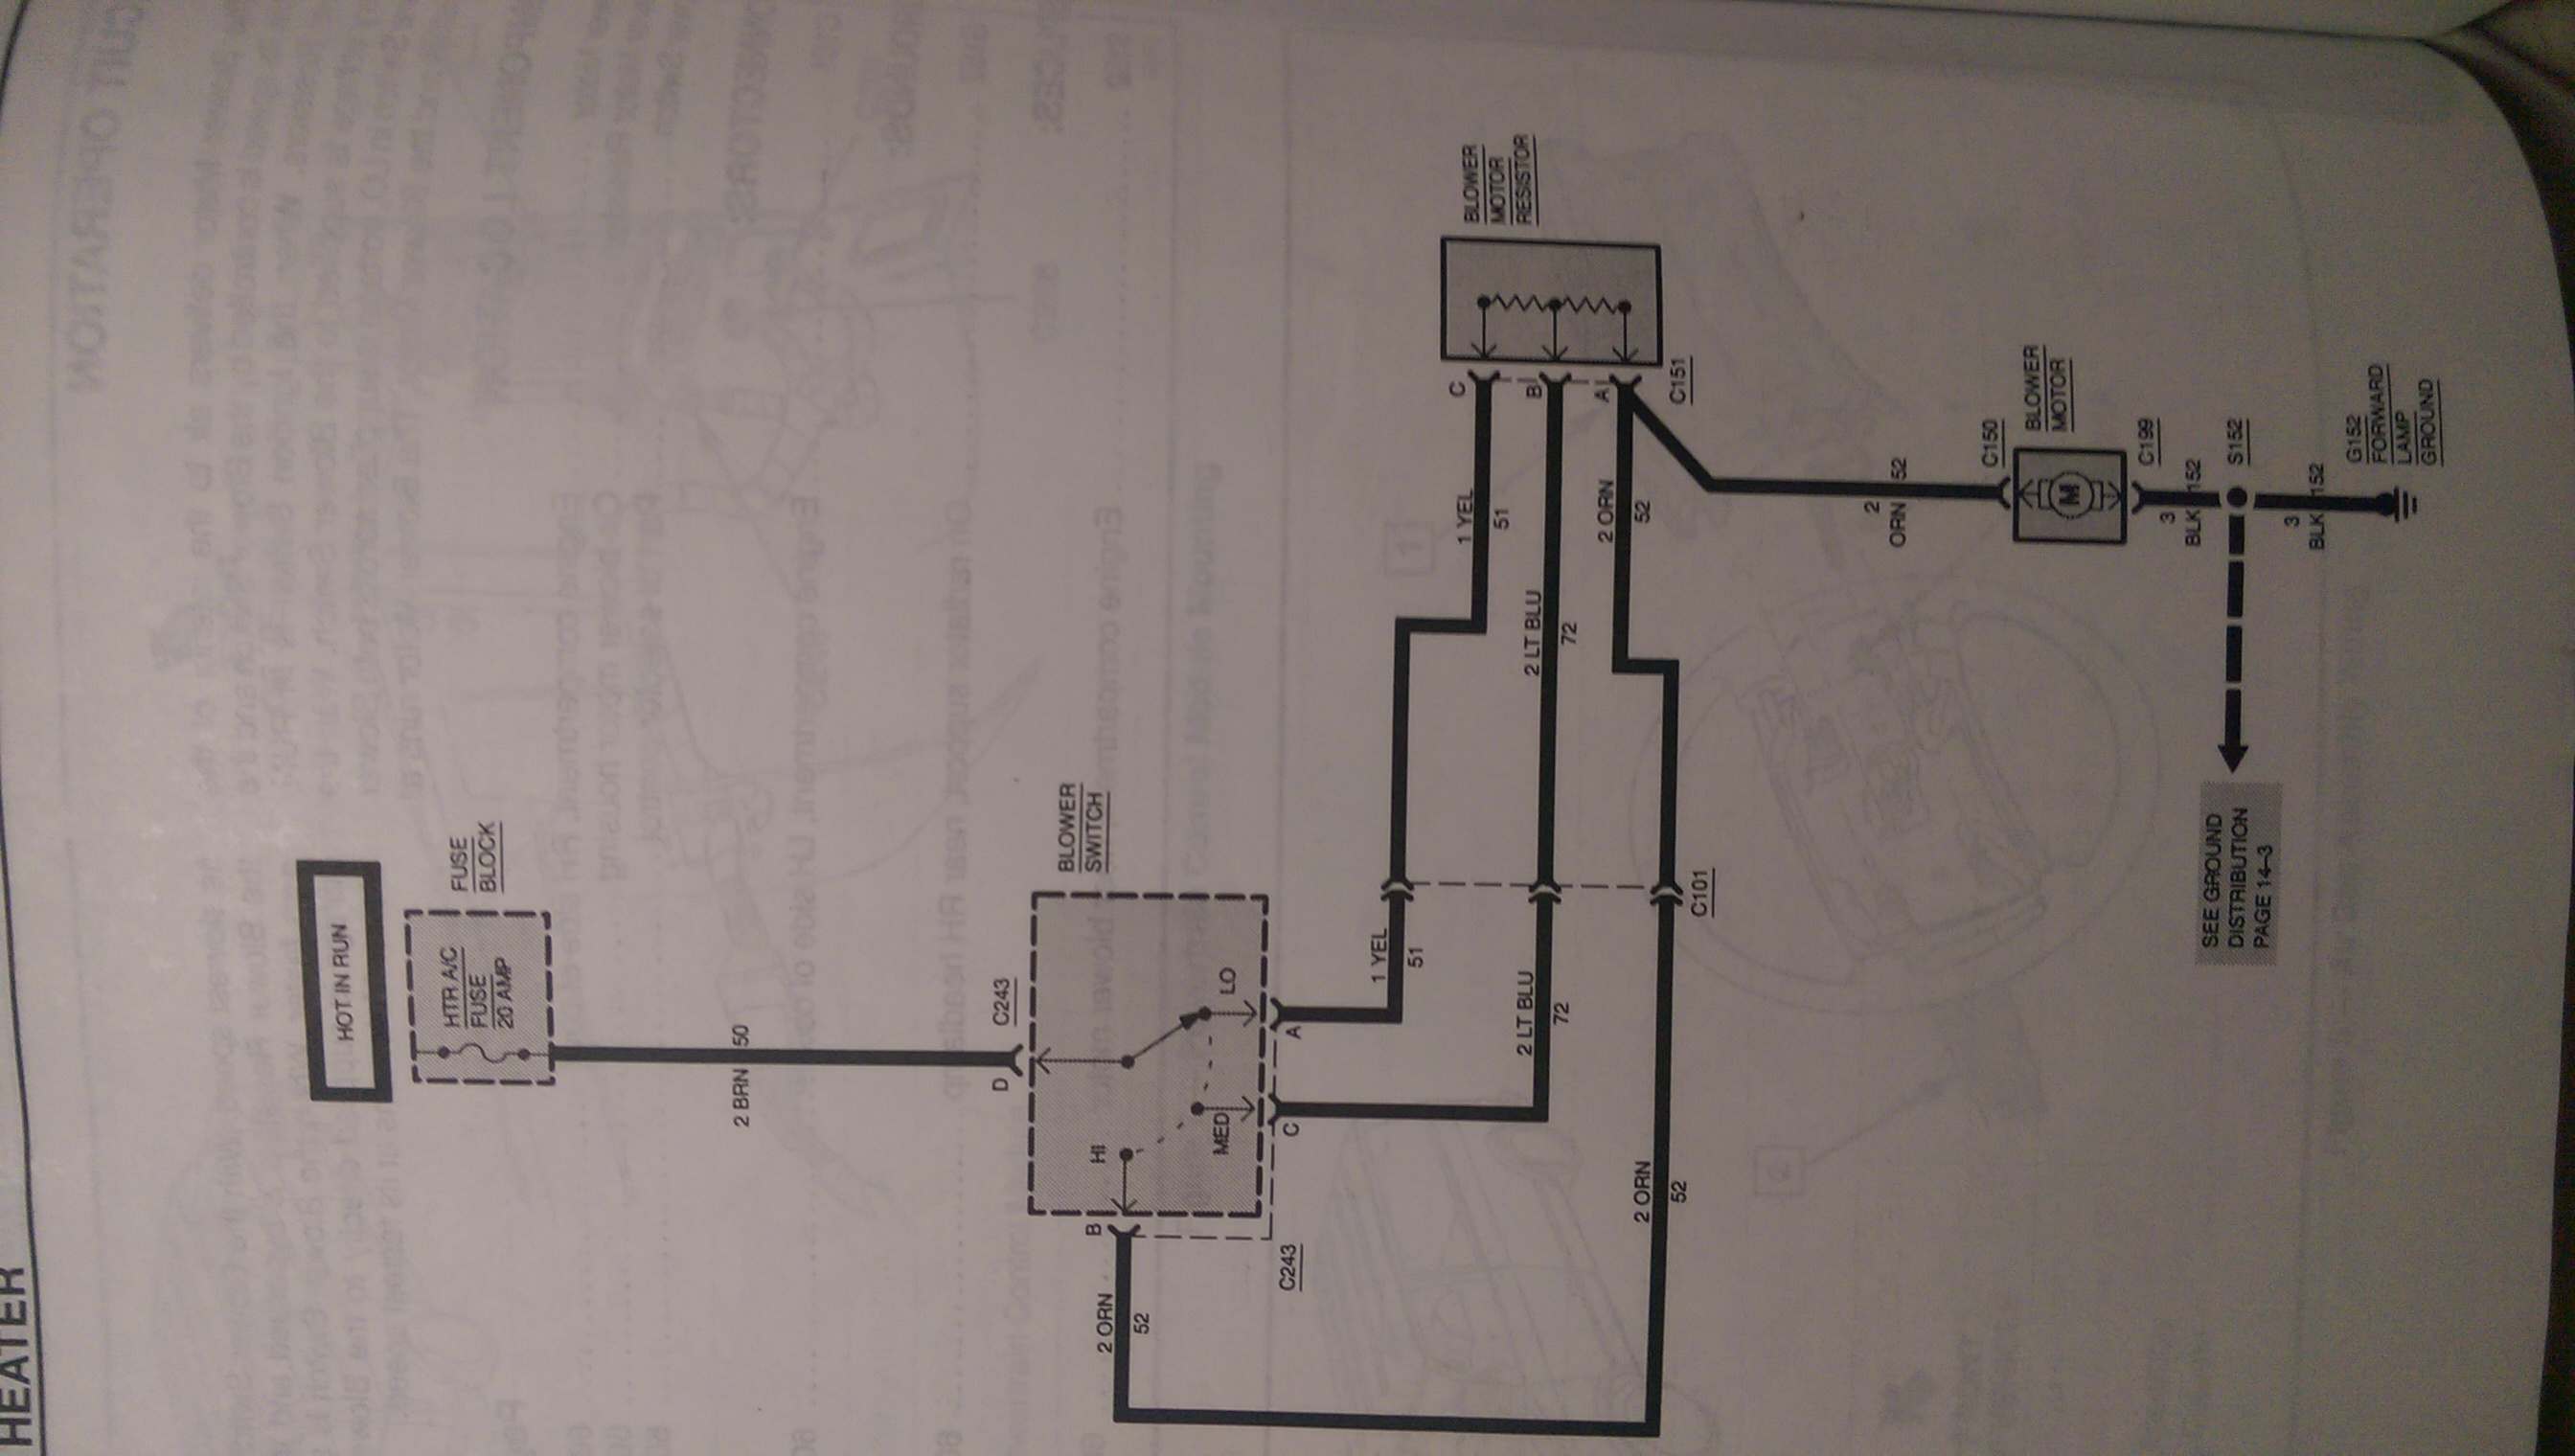 Wiring diagram and diagnostic ch...